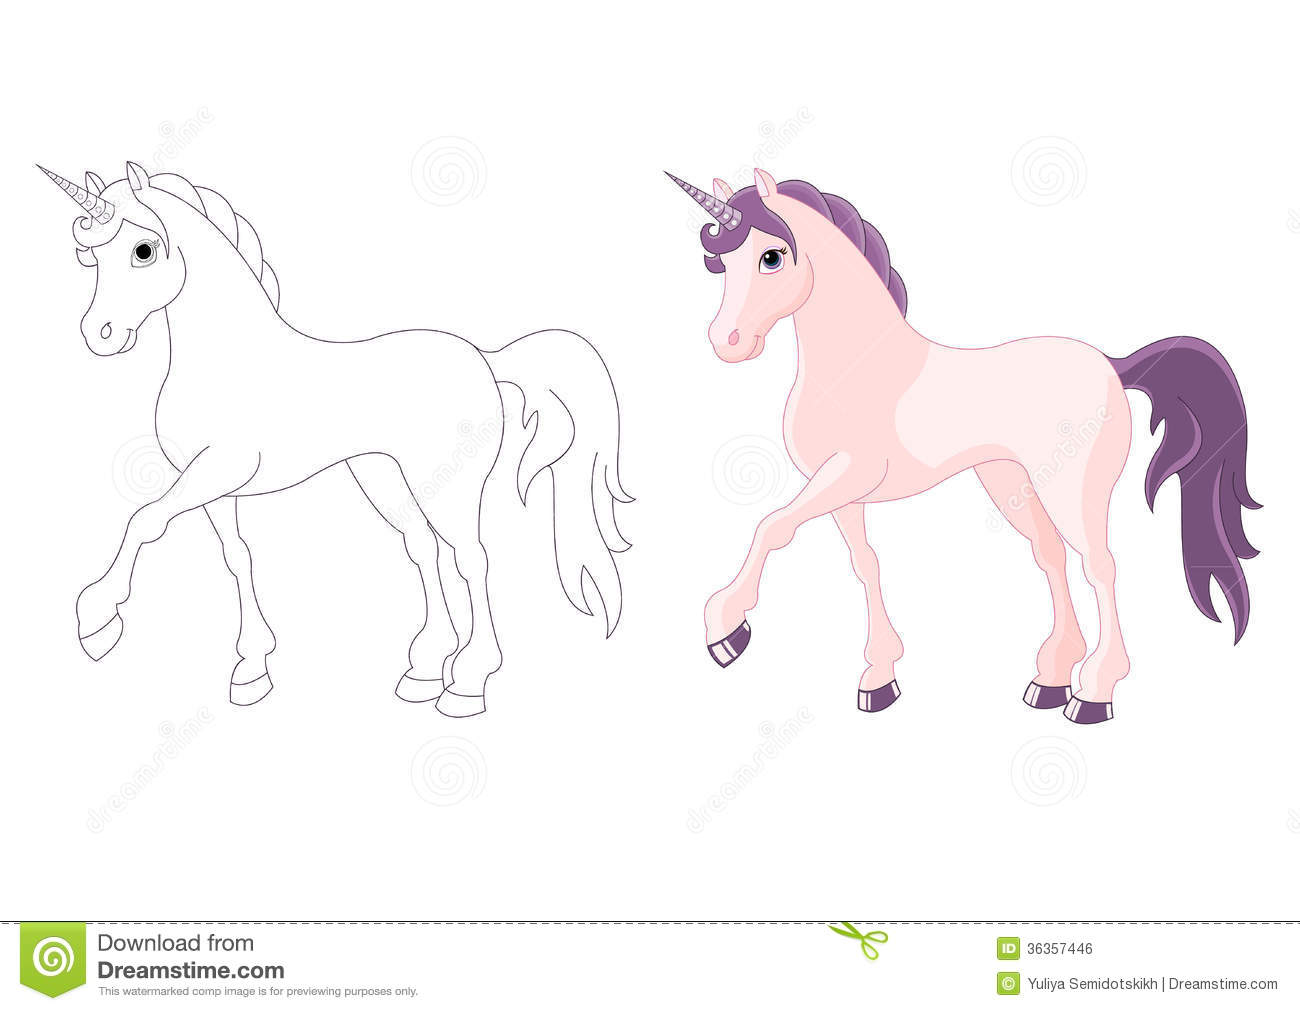 Princess unicorn coloring - Related Keywords Suggestions For Unicorn And Princess Coloring Page